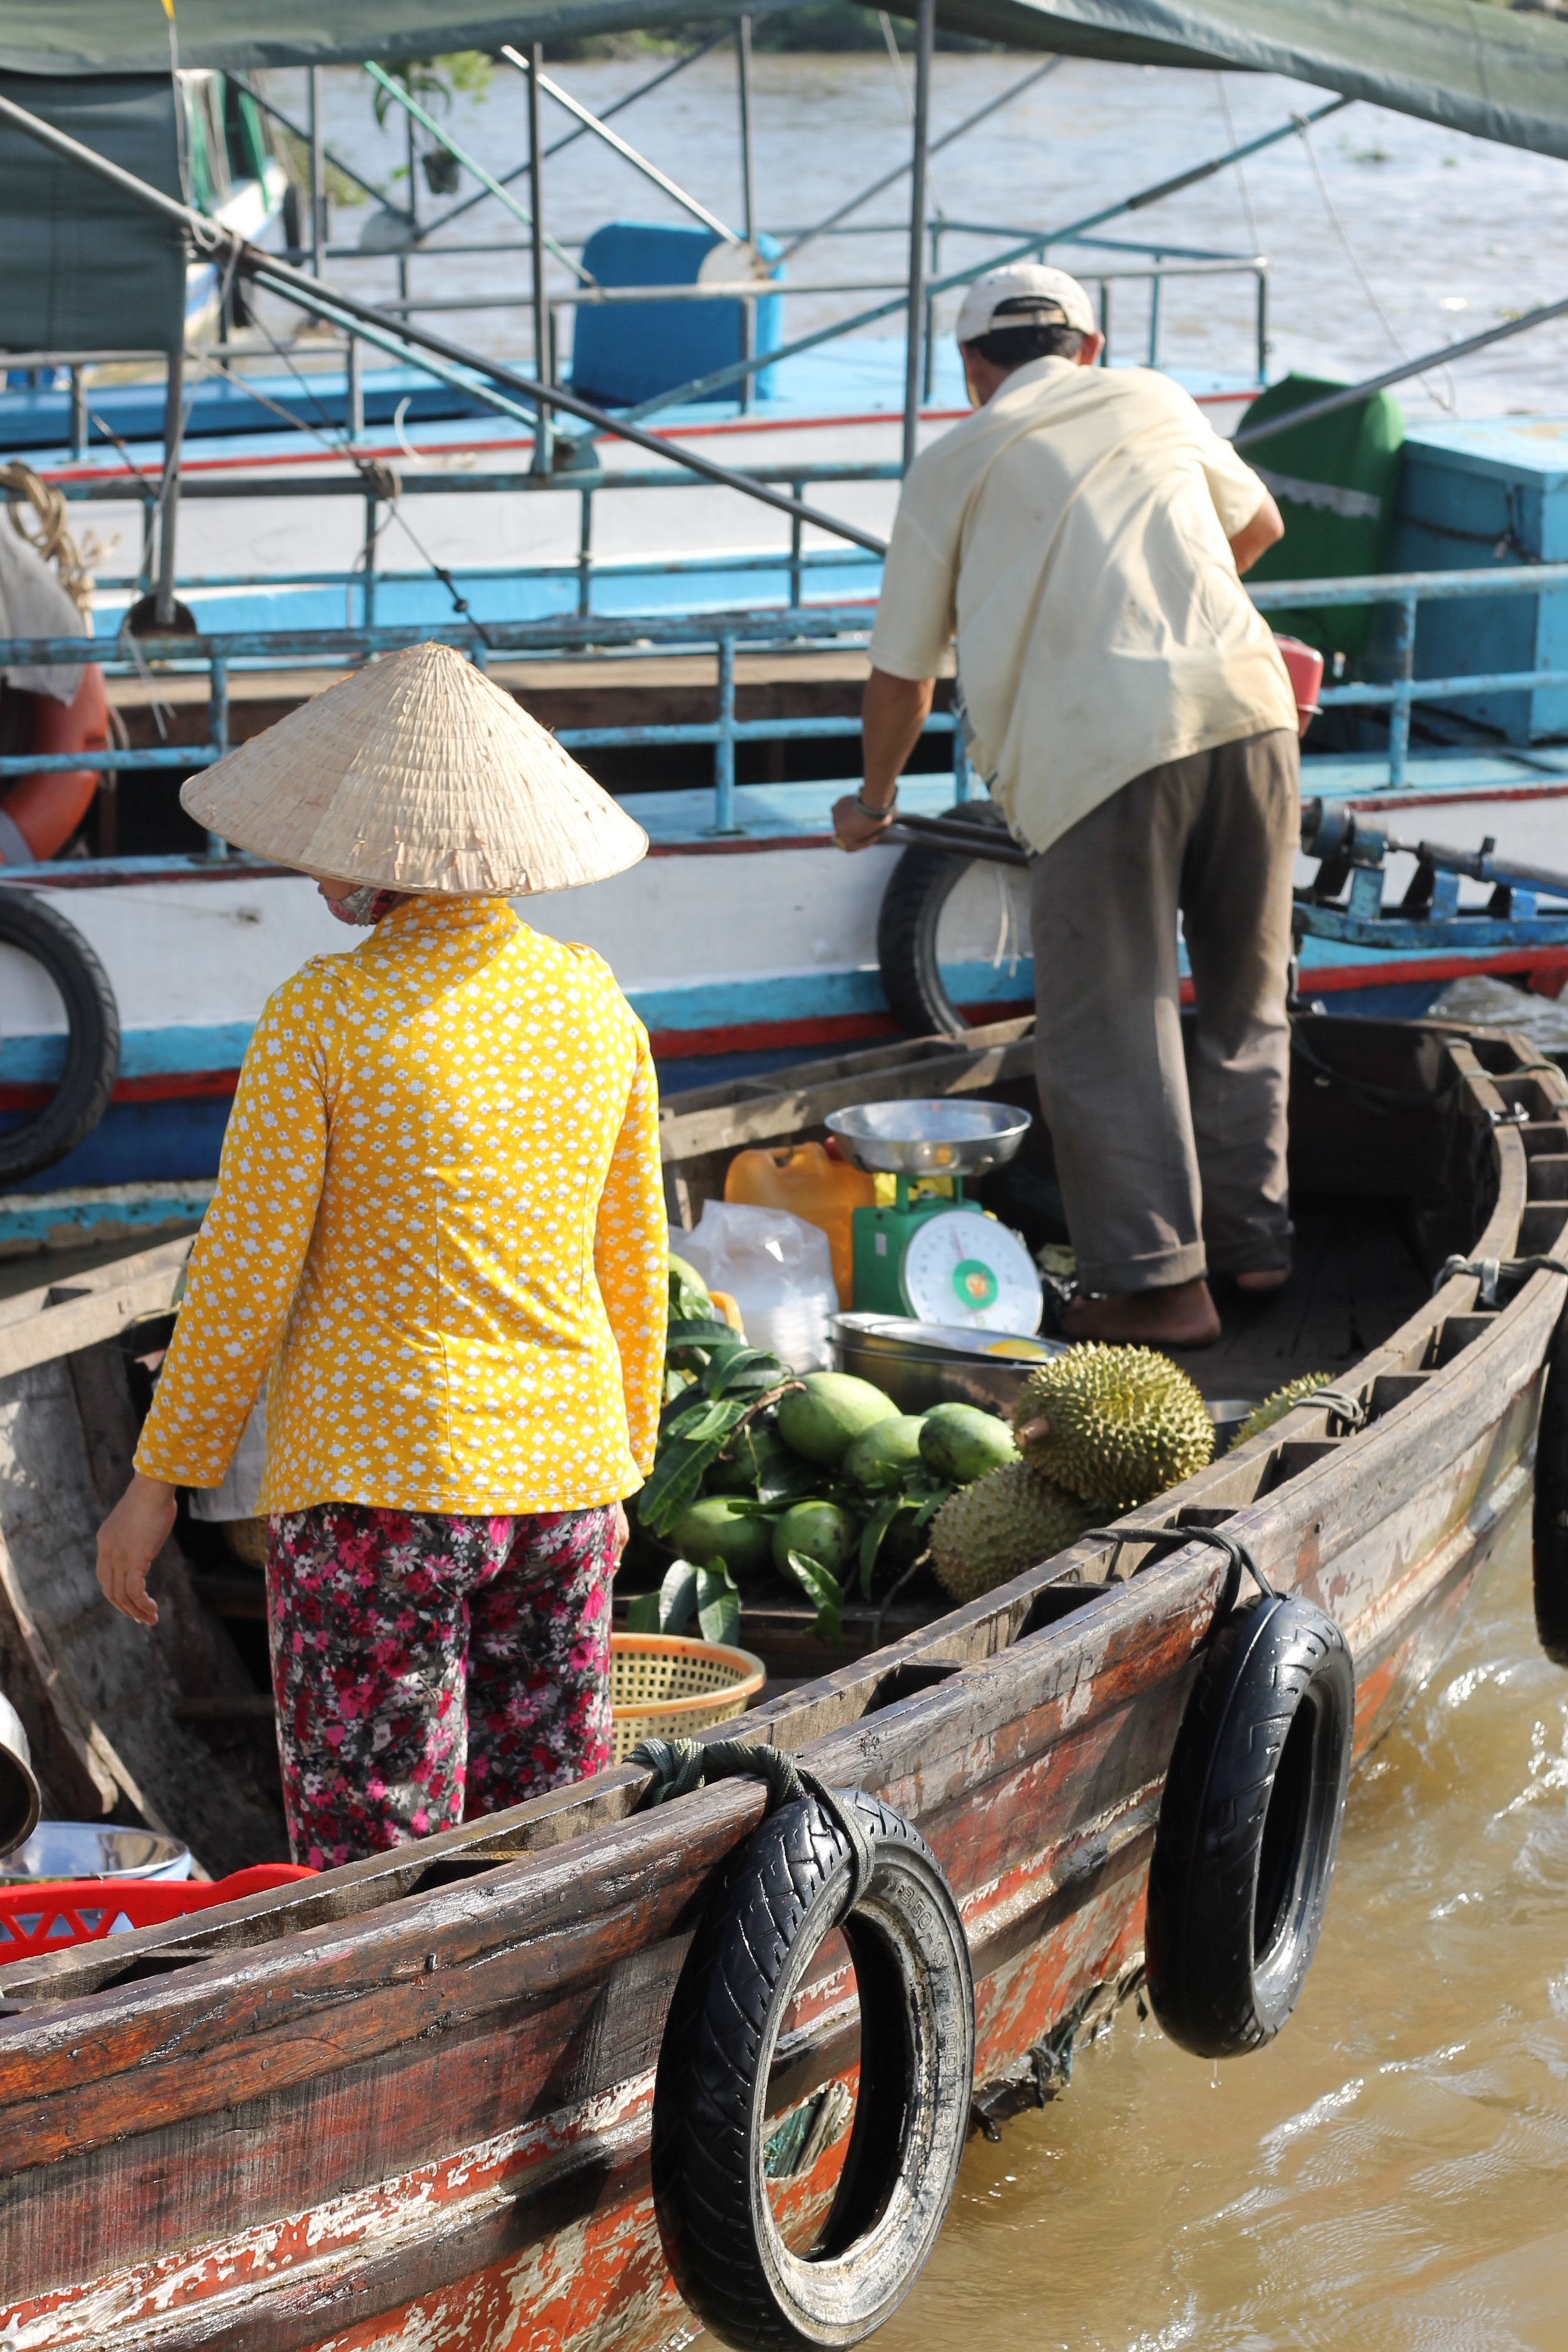 Fruit sellers at a floating market in the Mekong Delta.